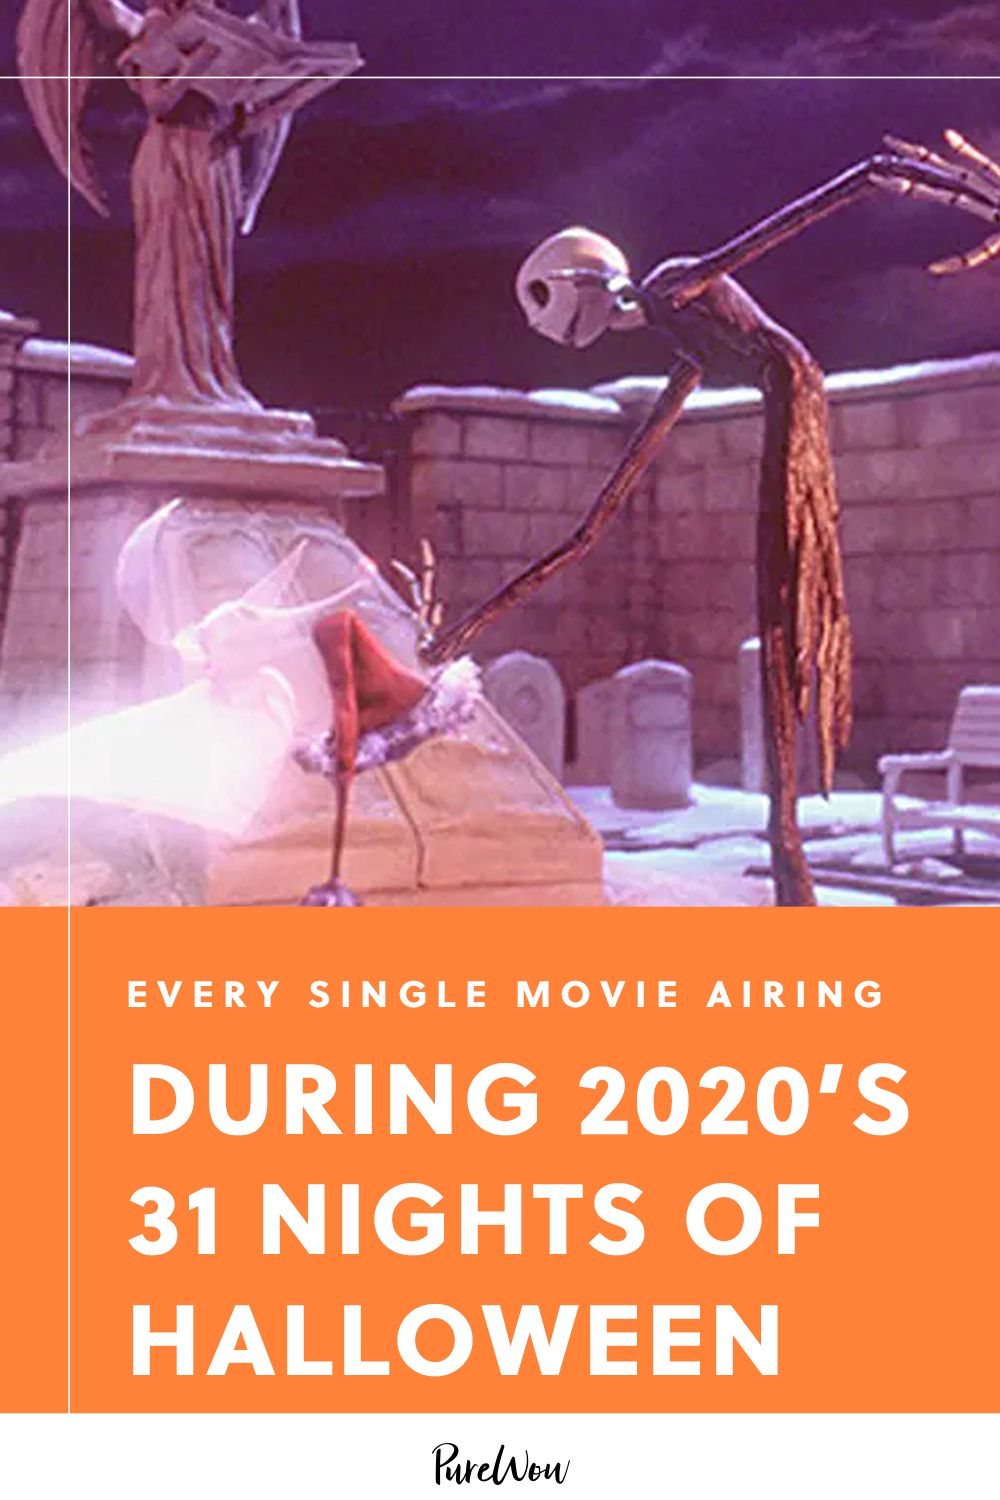 When Is Halloween Airing 2020 Here's Every Single Movie Airing During Freeform's 31 Nights of